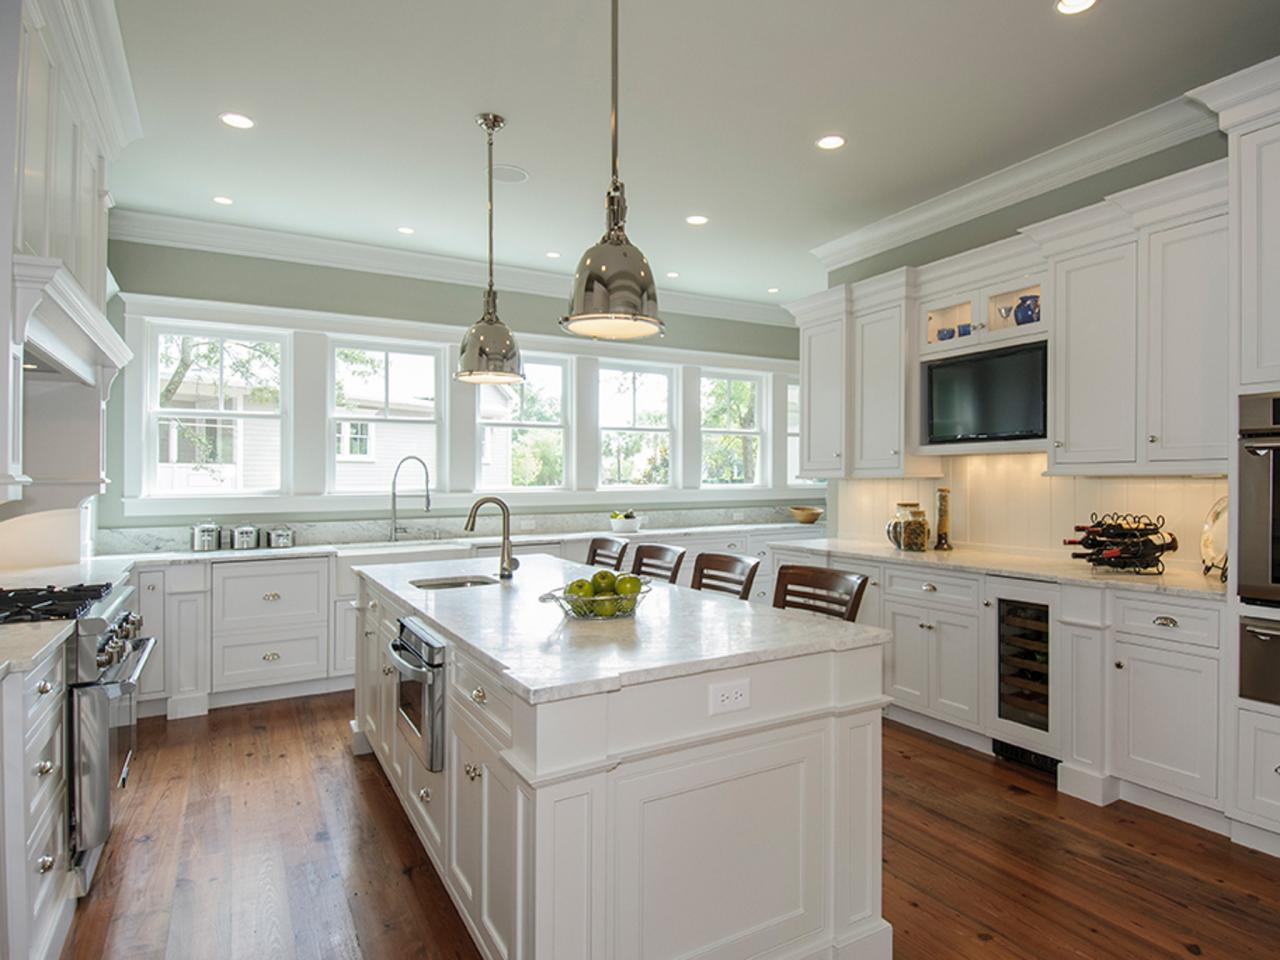 White kitchen cabinets be equipped traditional cabinets be equipped kitchen paint be equipped good quality kitchen cabinets